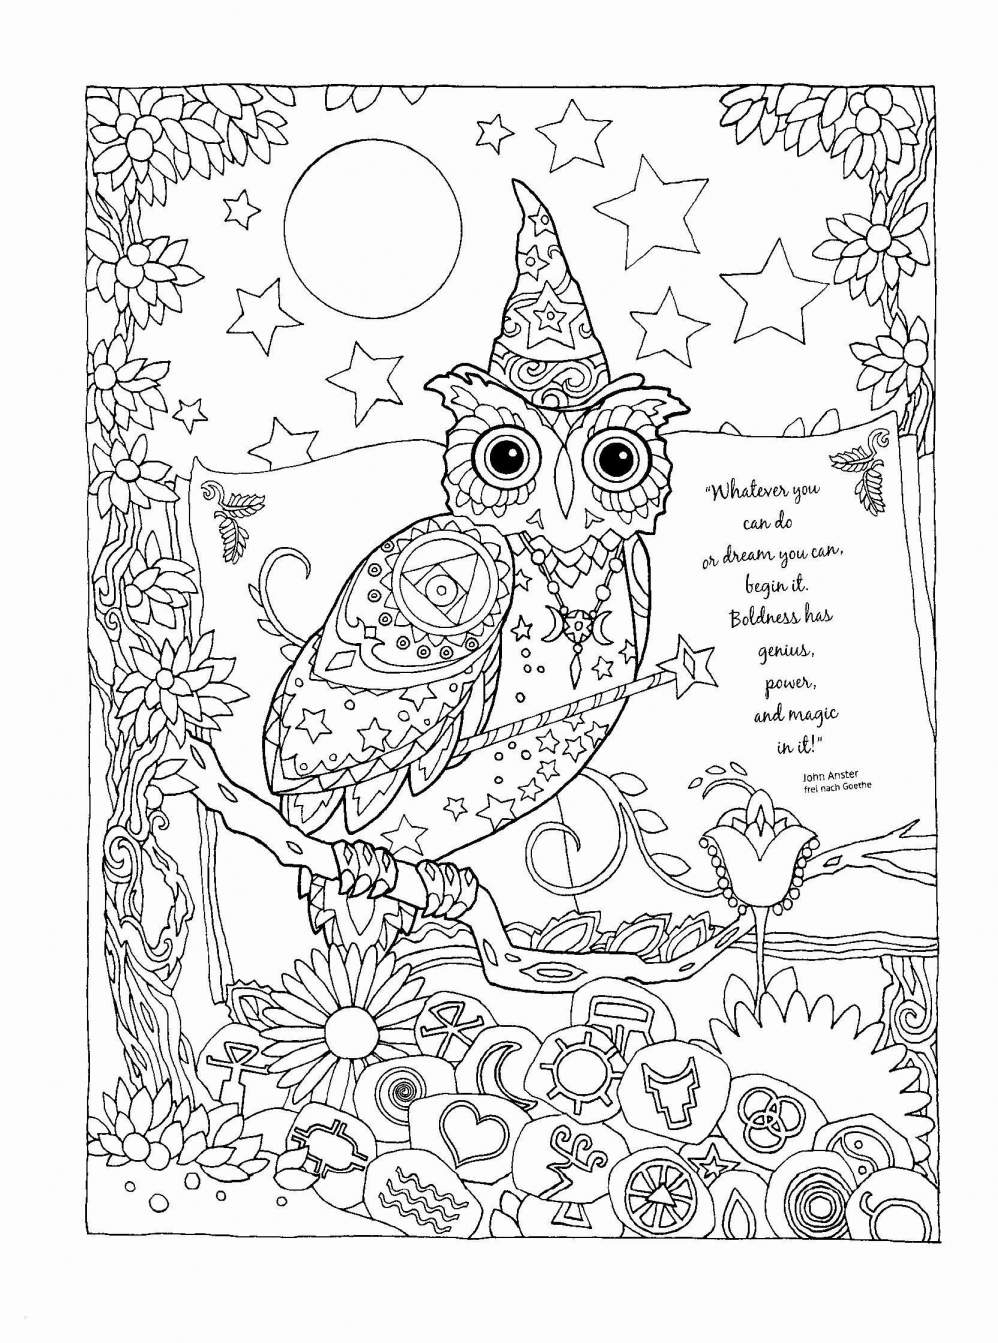 free bible coloring pages to print Download-Christmas Coloring for Free Free Owl Coloring Pages Coloring Pages Line New Line Coloring 0d 20-t